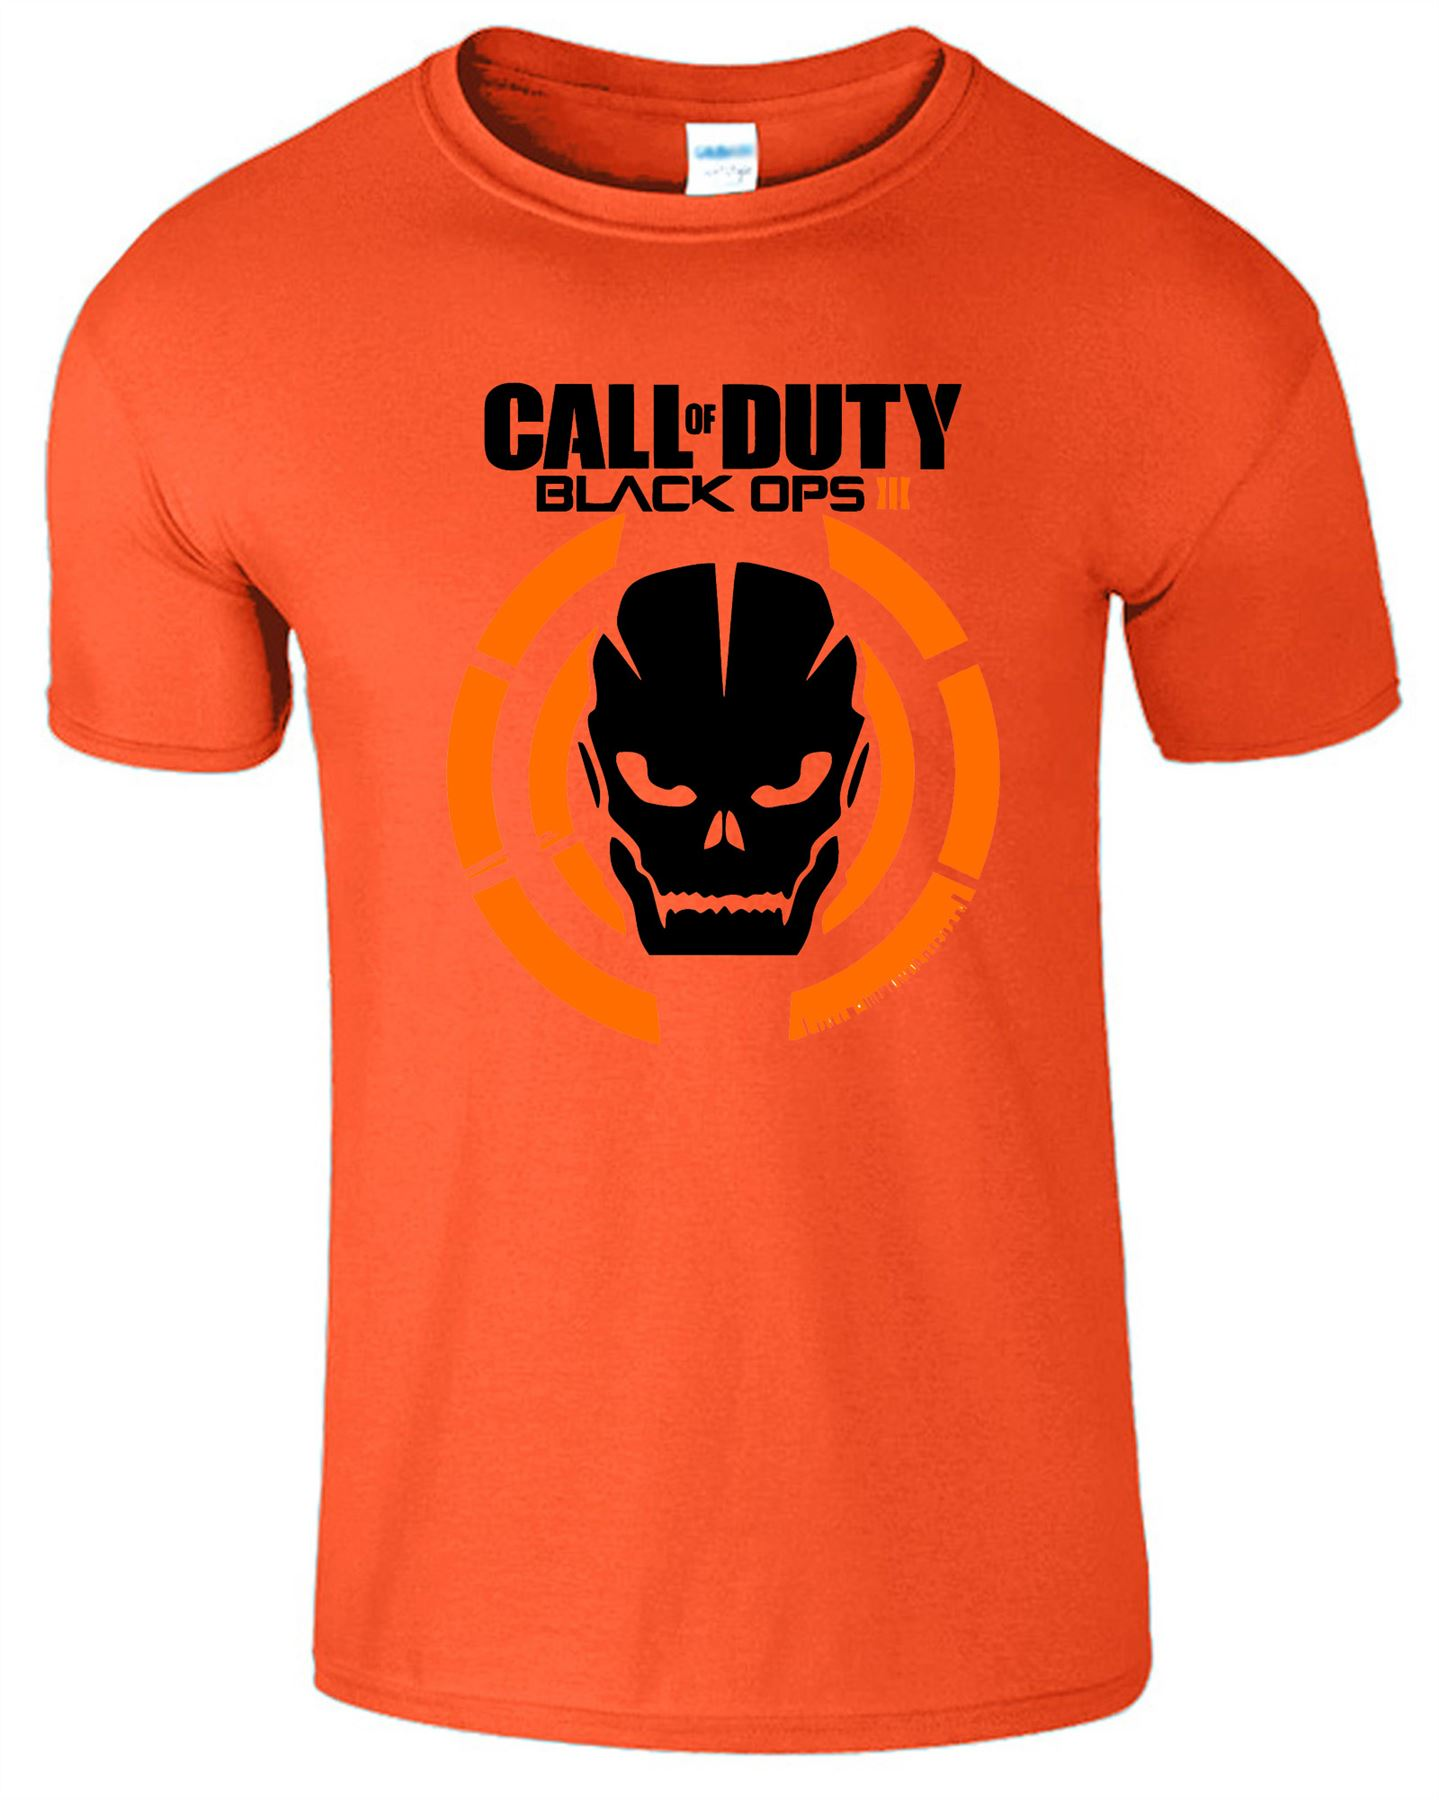 Duty-Black-Ops-Xbox-PS3-PS4-Game-Logo-With-Skull-Mens-Tshirt-Tee-Top-Gift miniatuur 7